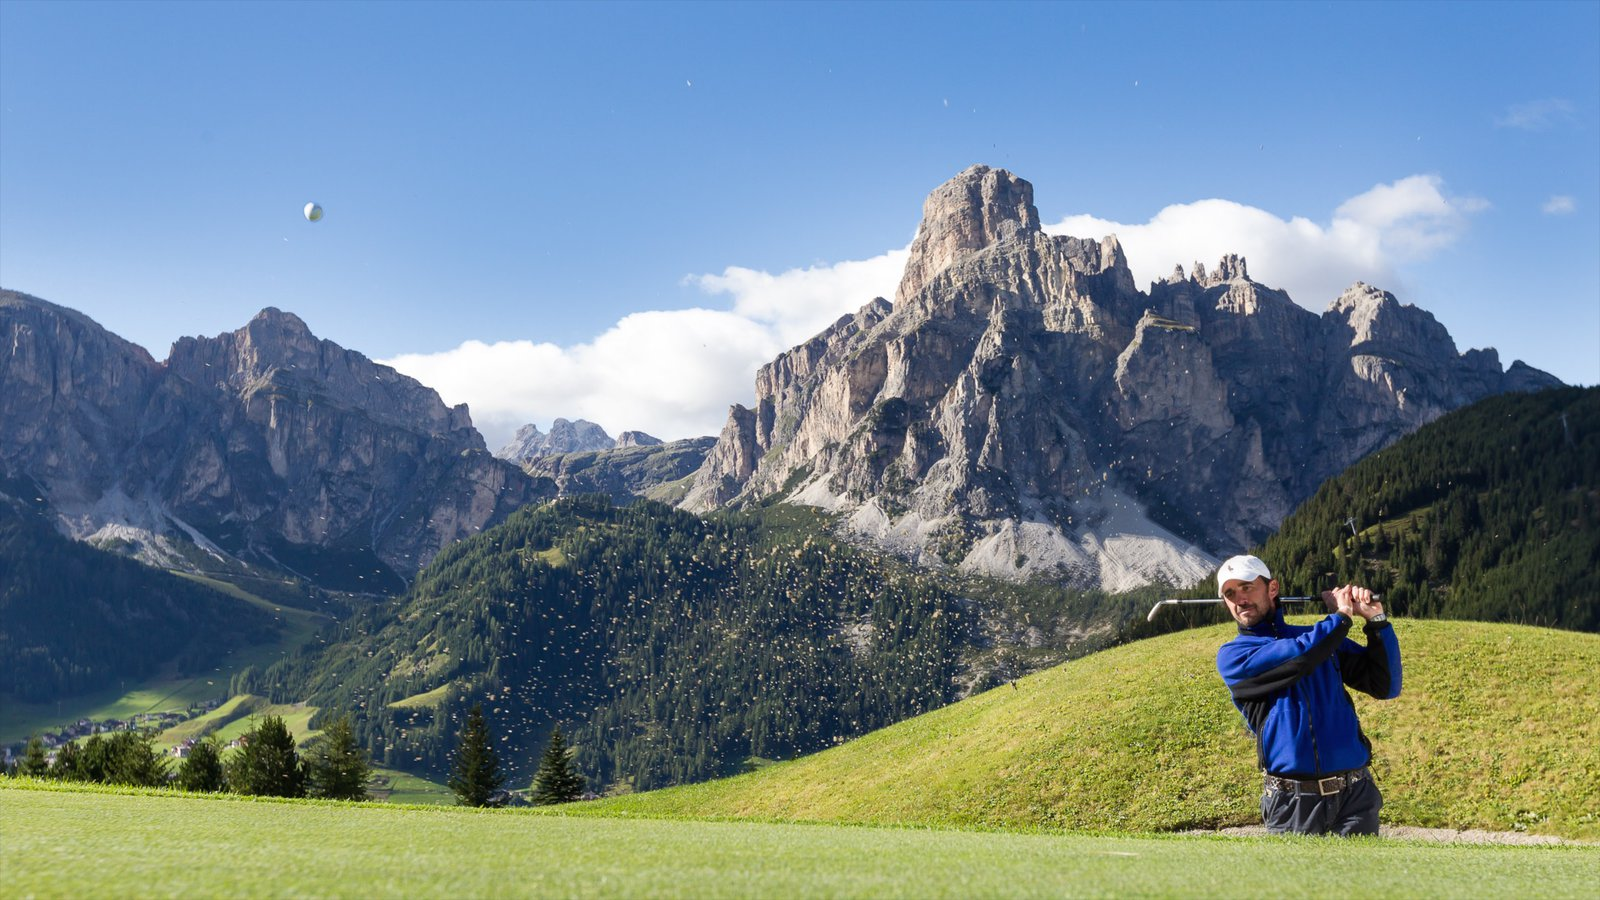 Corvara in Badia showing mountains and golf as well as an individual male